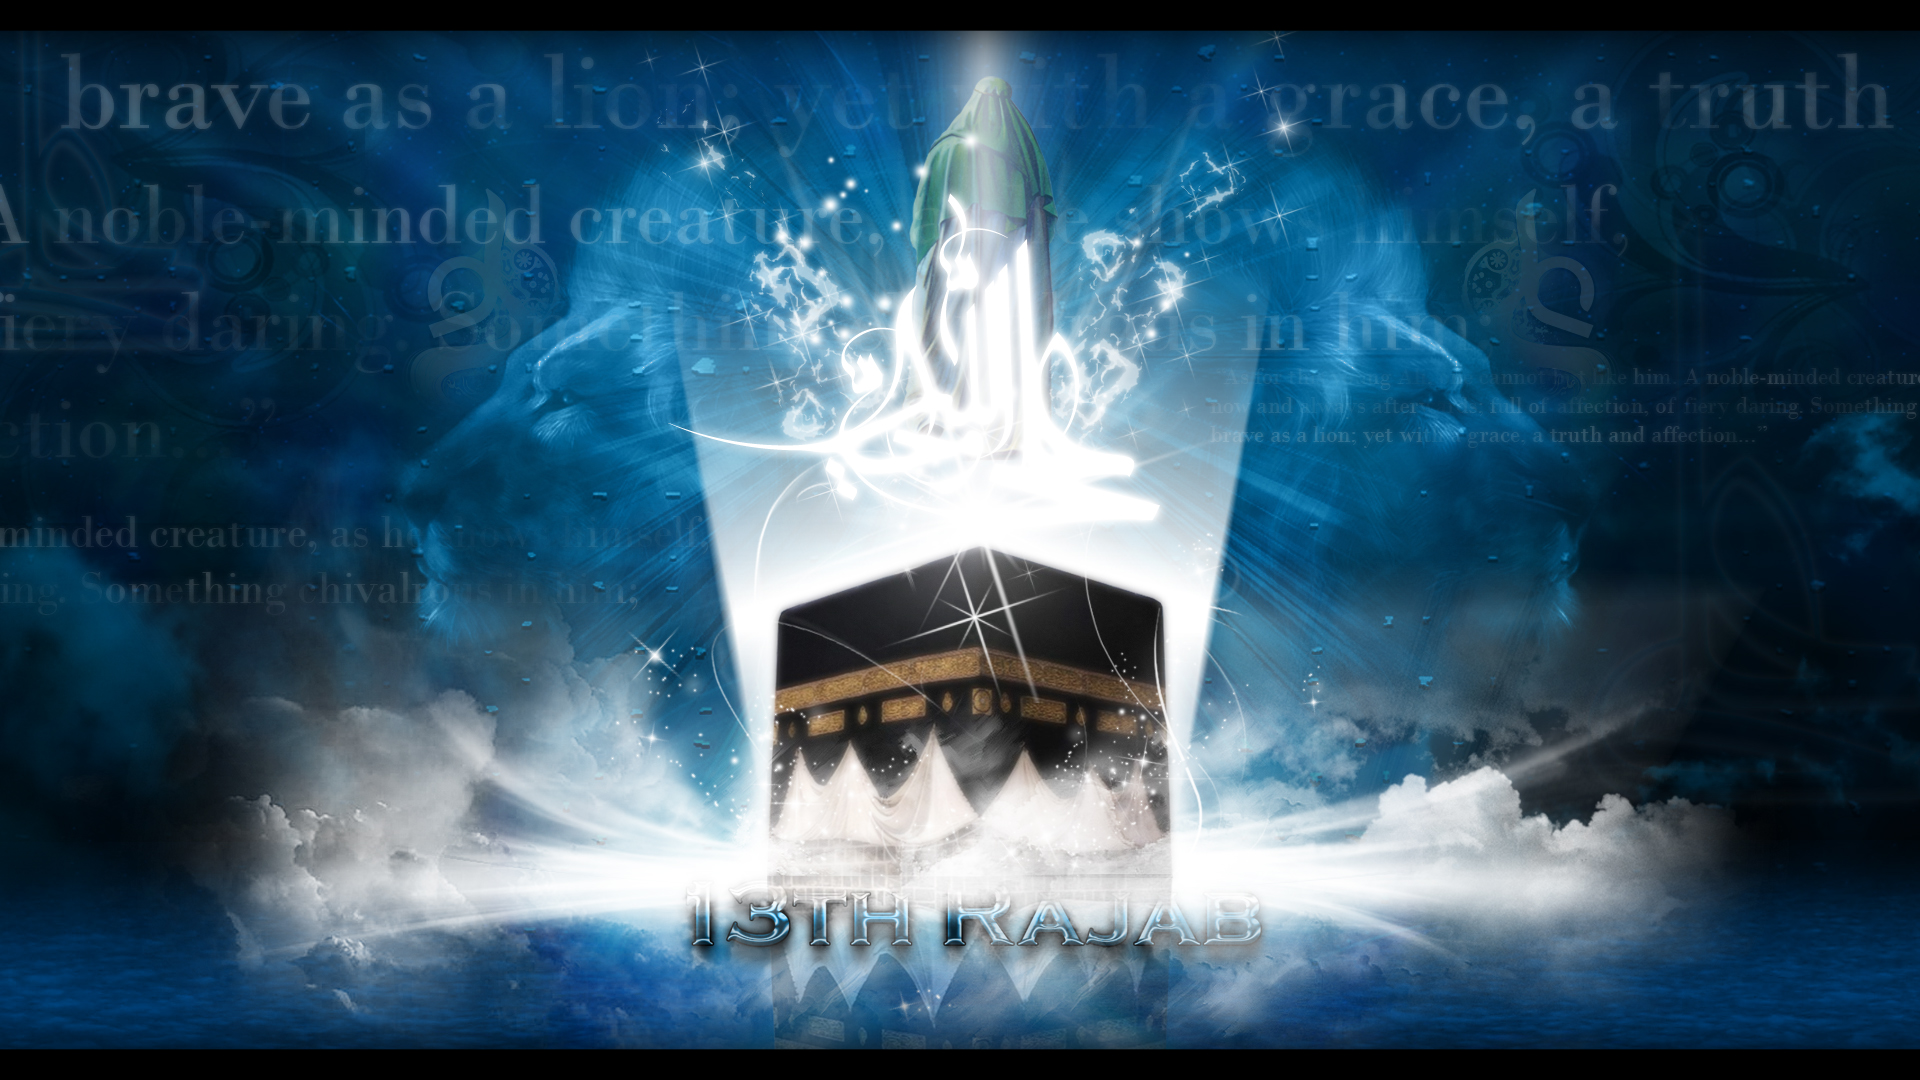 1000 images about imam mahdi on pinterest - Imam wallpaper ...